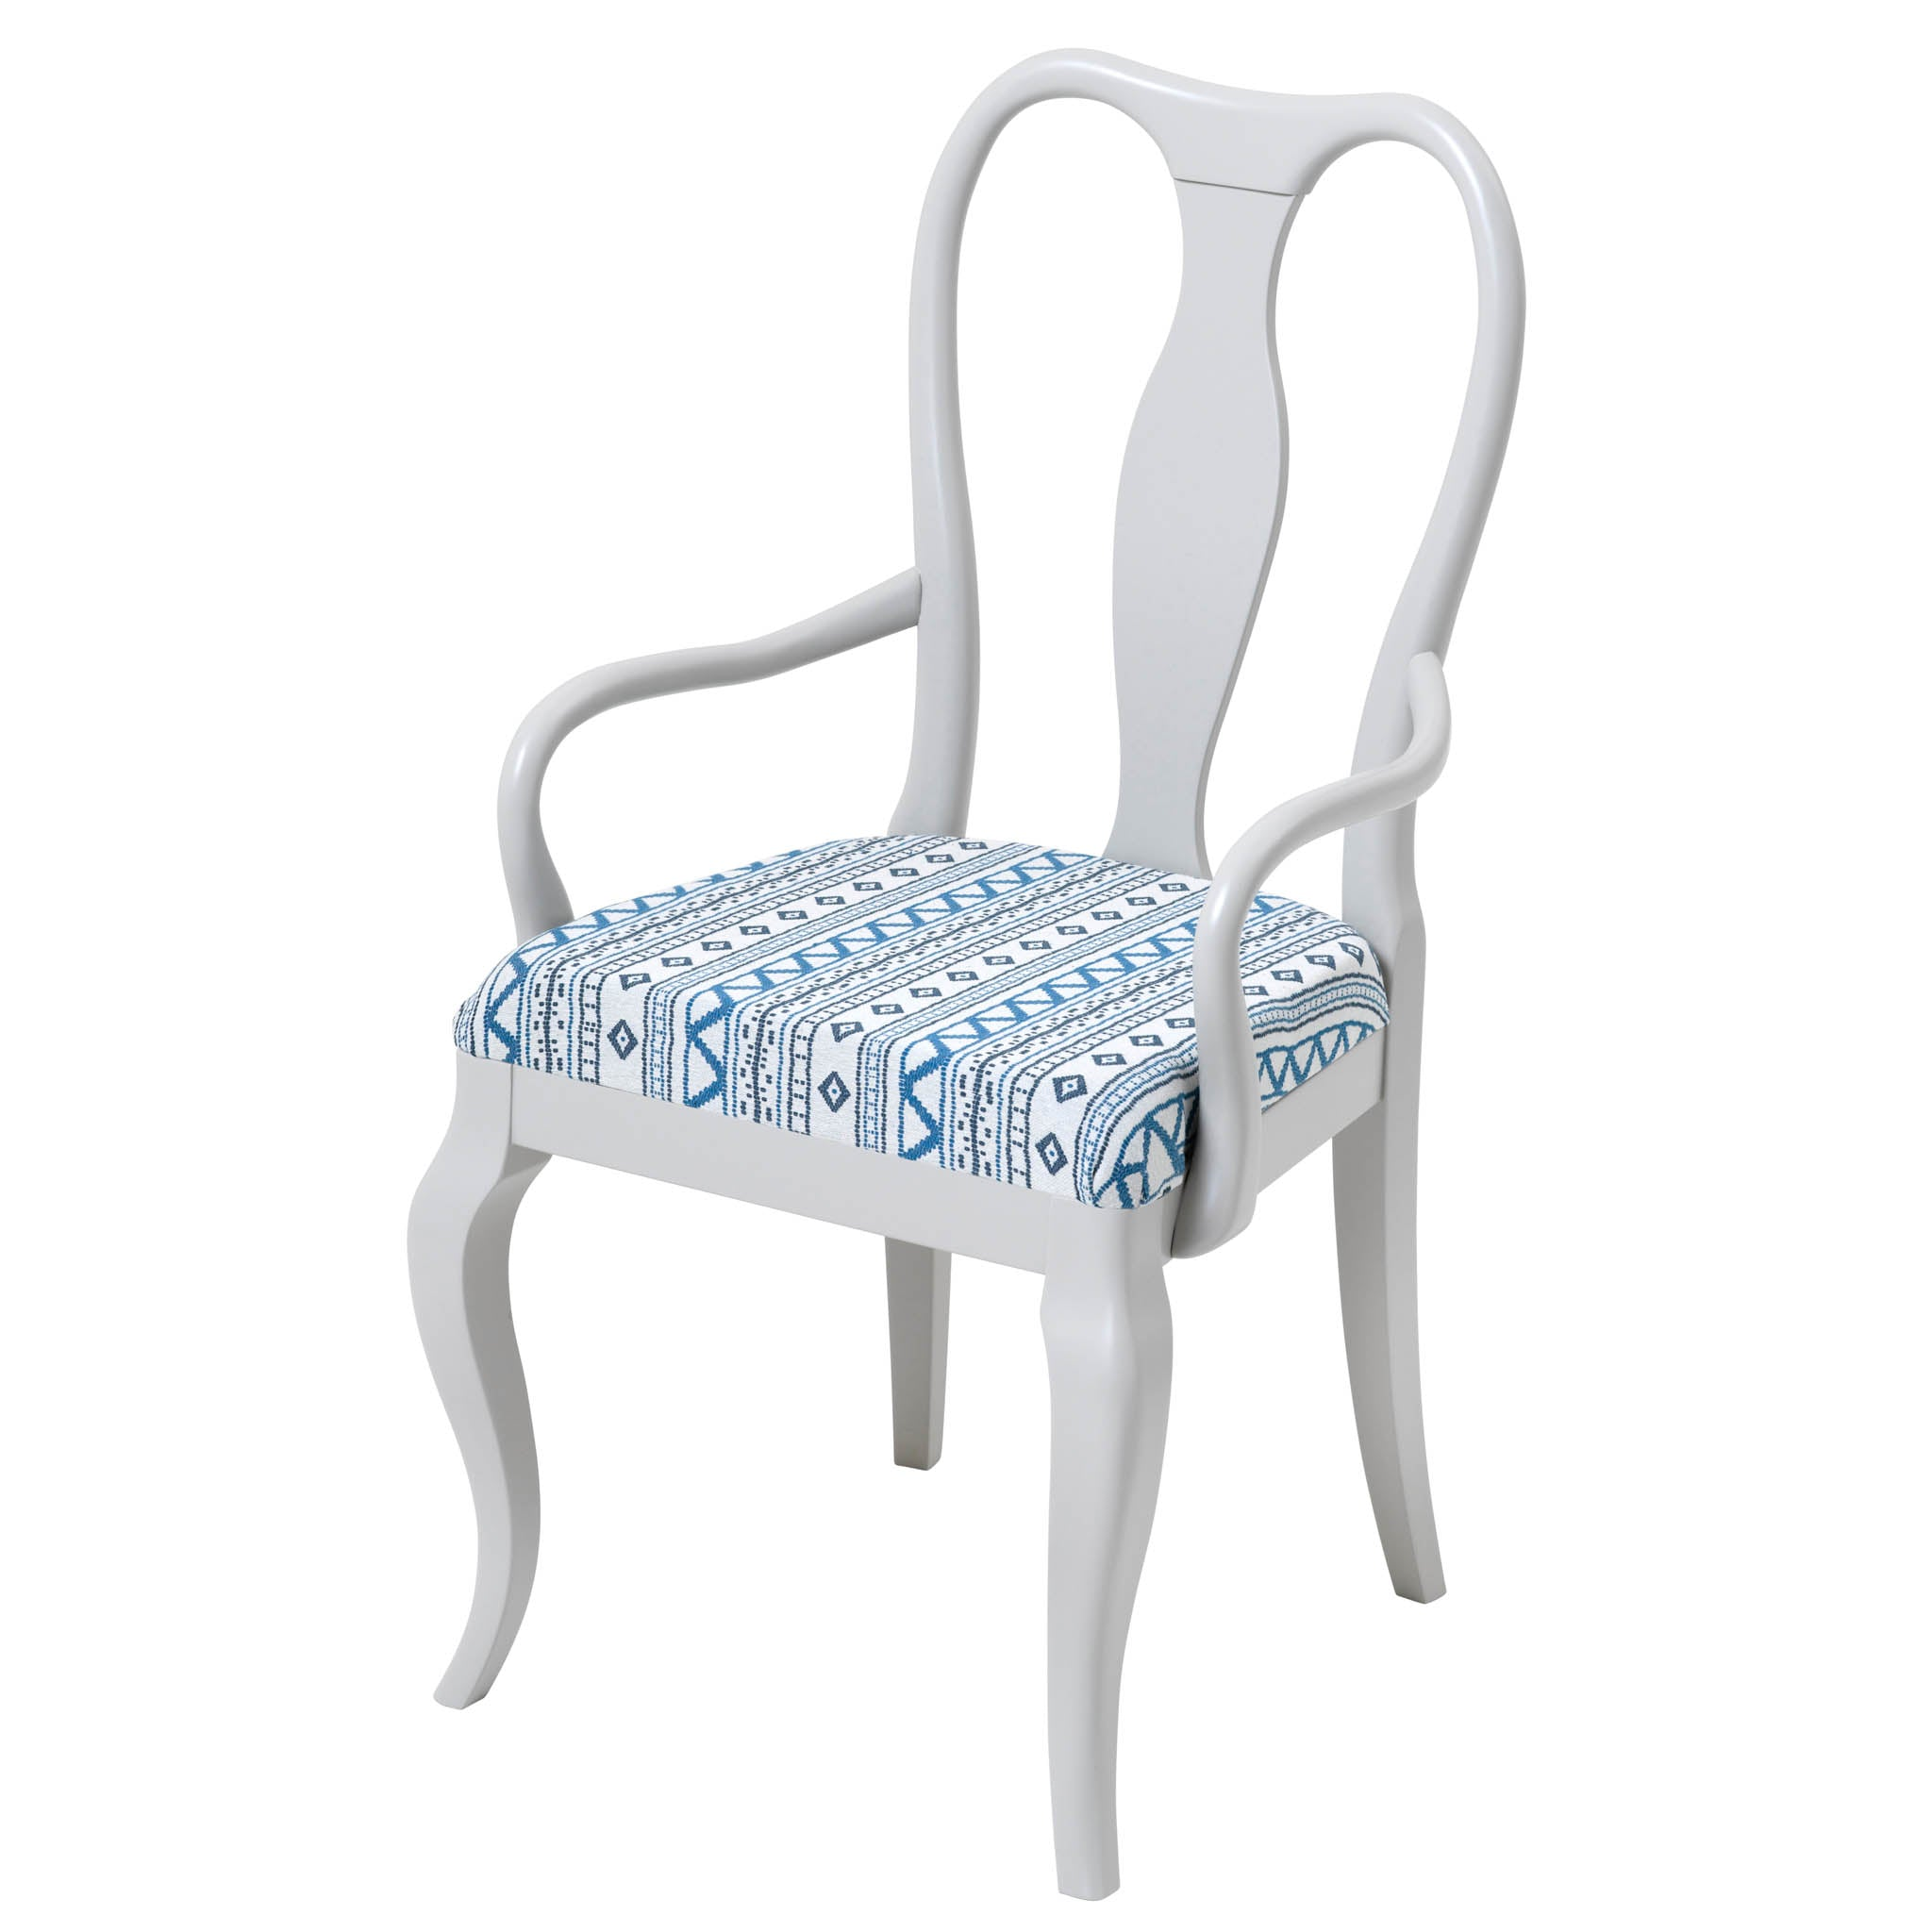 The Marco Chair